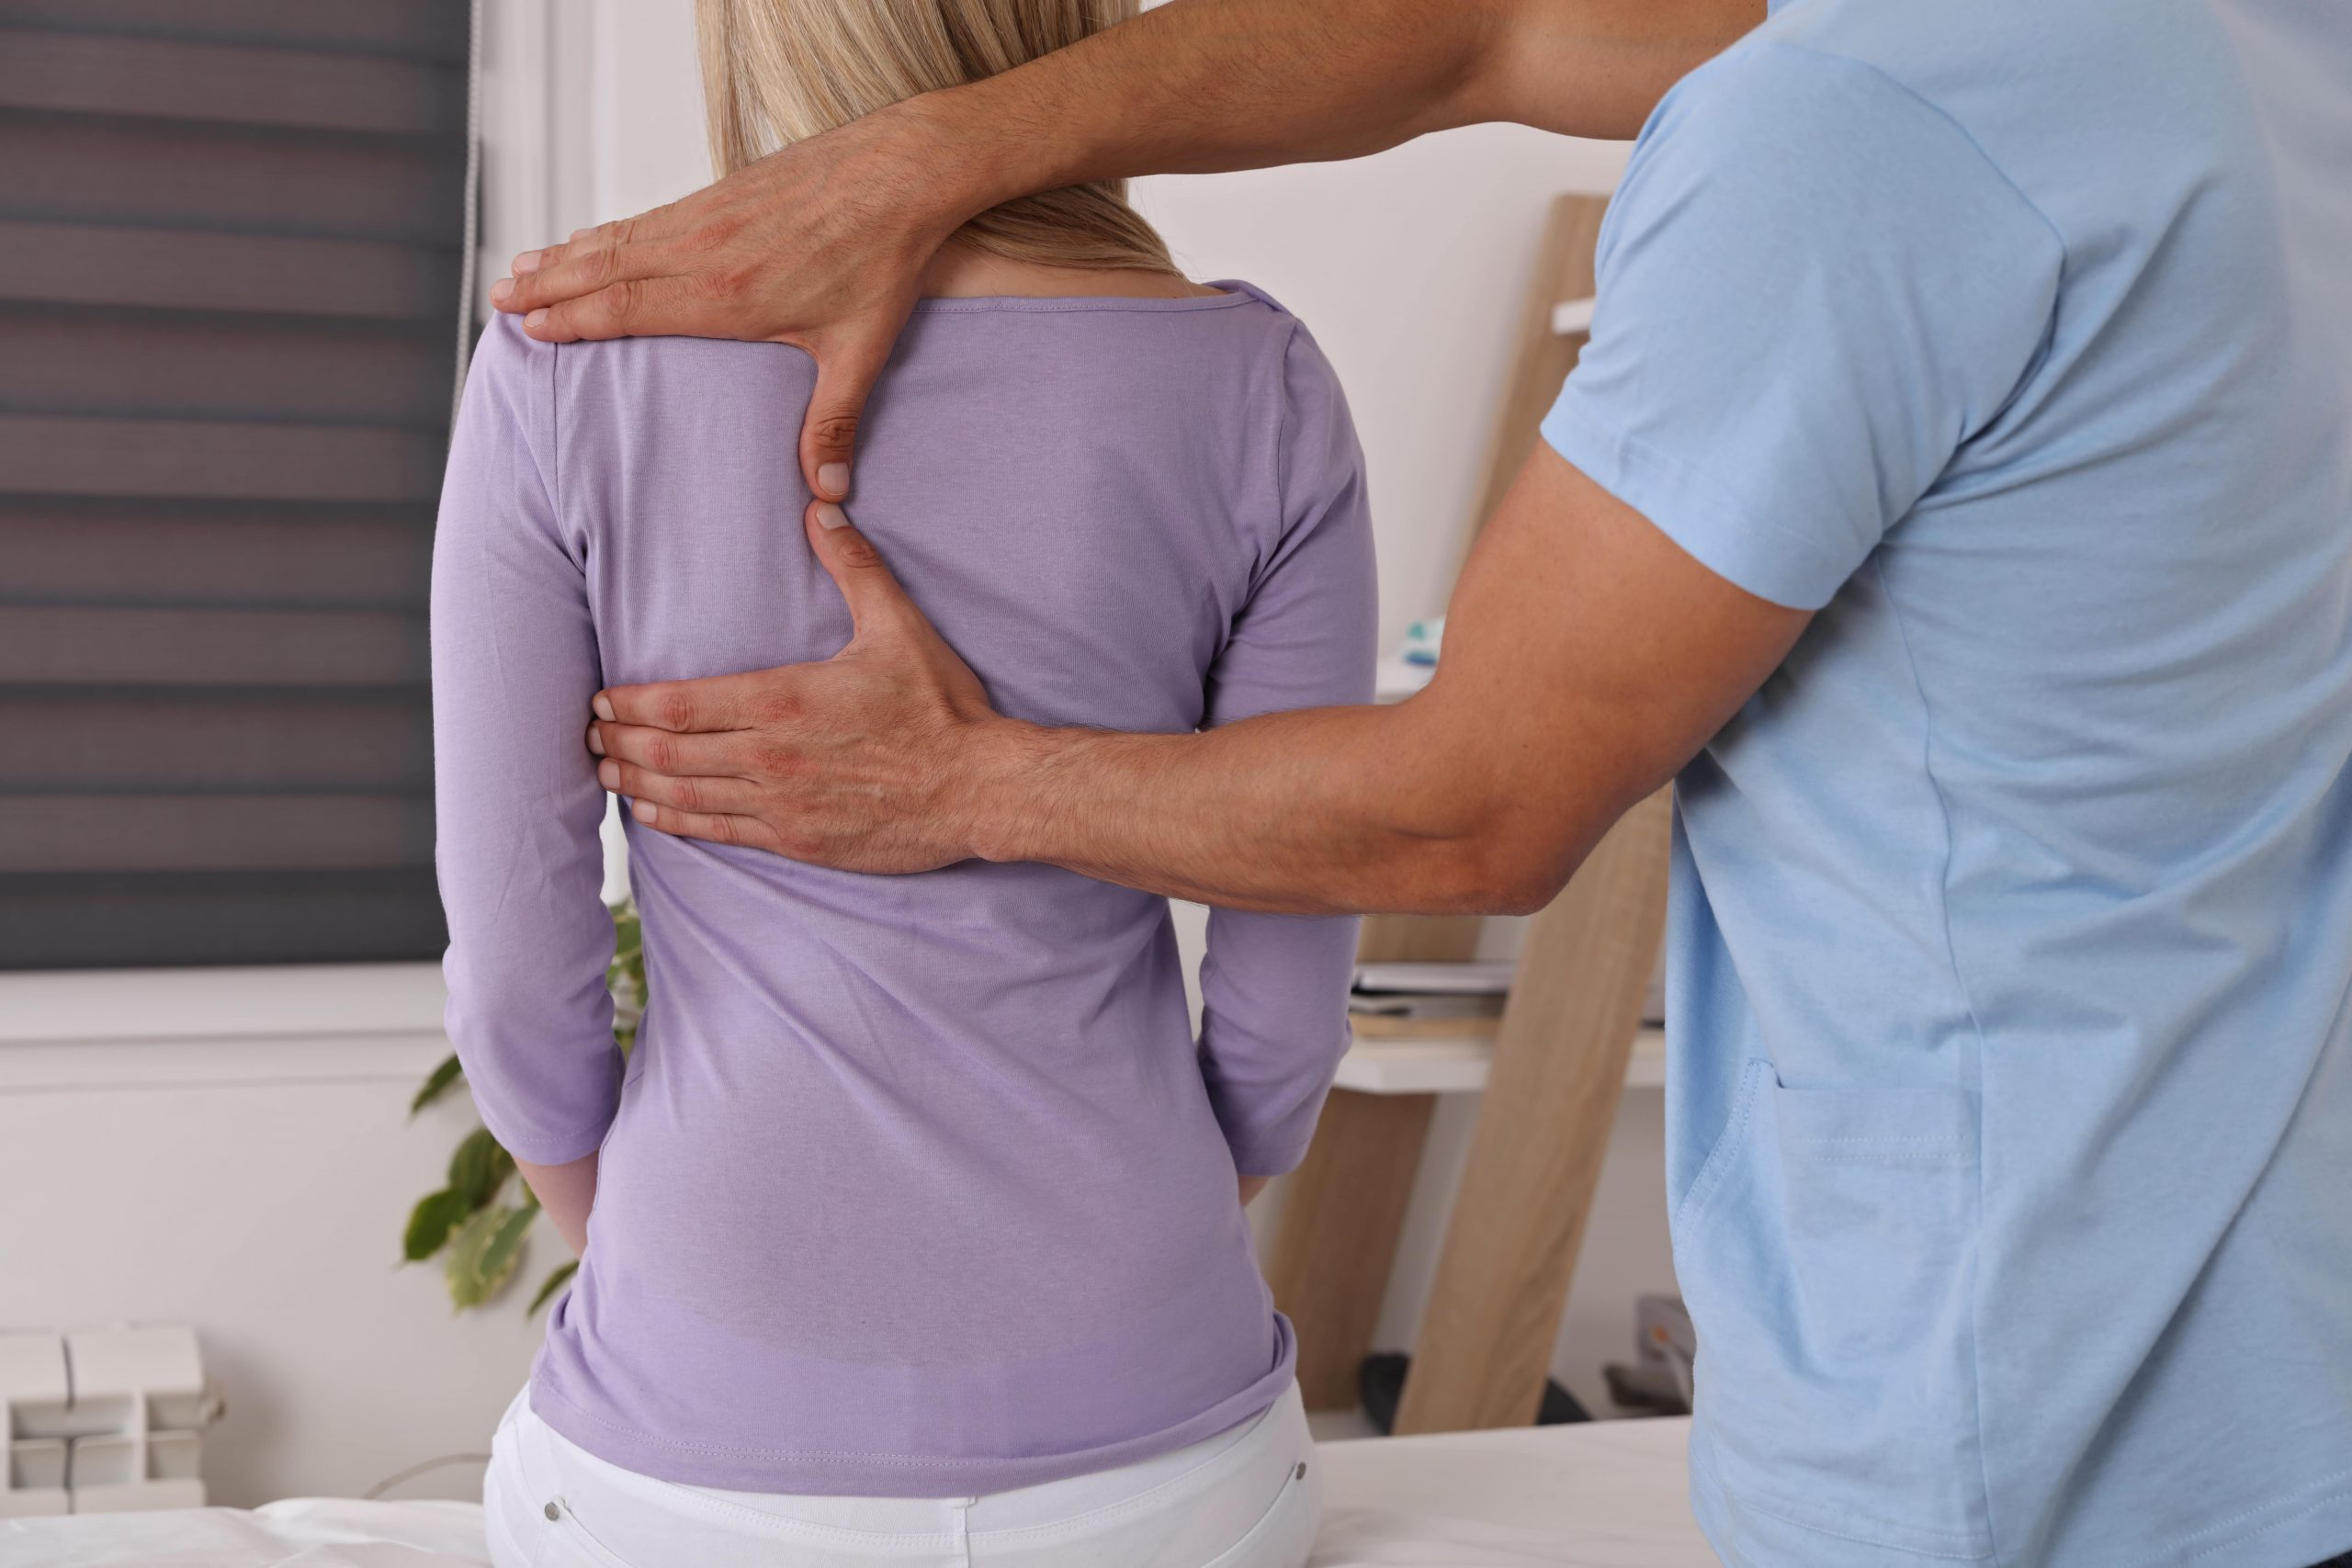 Difference between an osteopath and a chiropractor